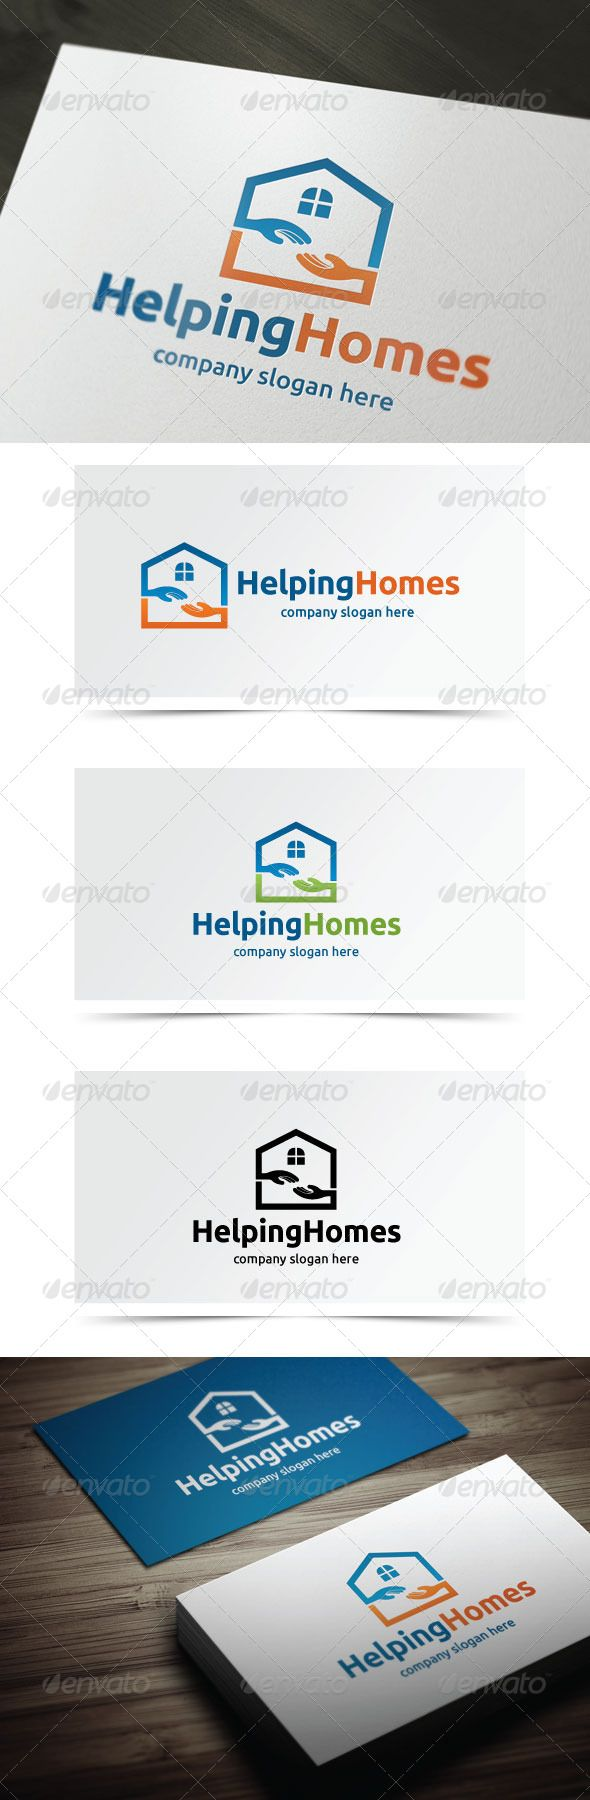 Helping Hands Logo Design Template Vector #logotype Download it here:  http://graphicriver.net/item/helping-hands/5658468?s_rank=222?ref=nexion